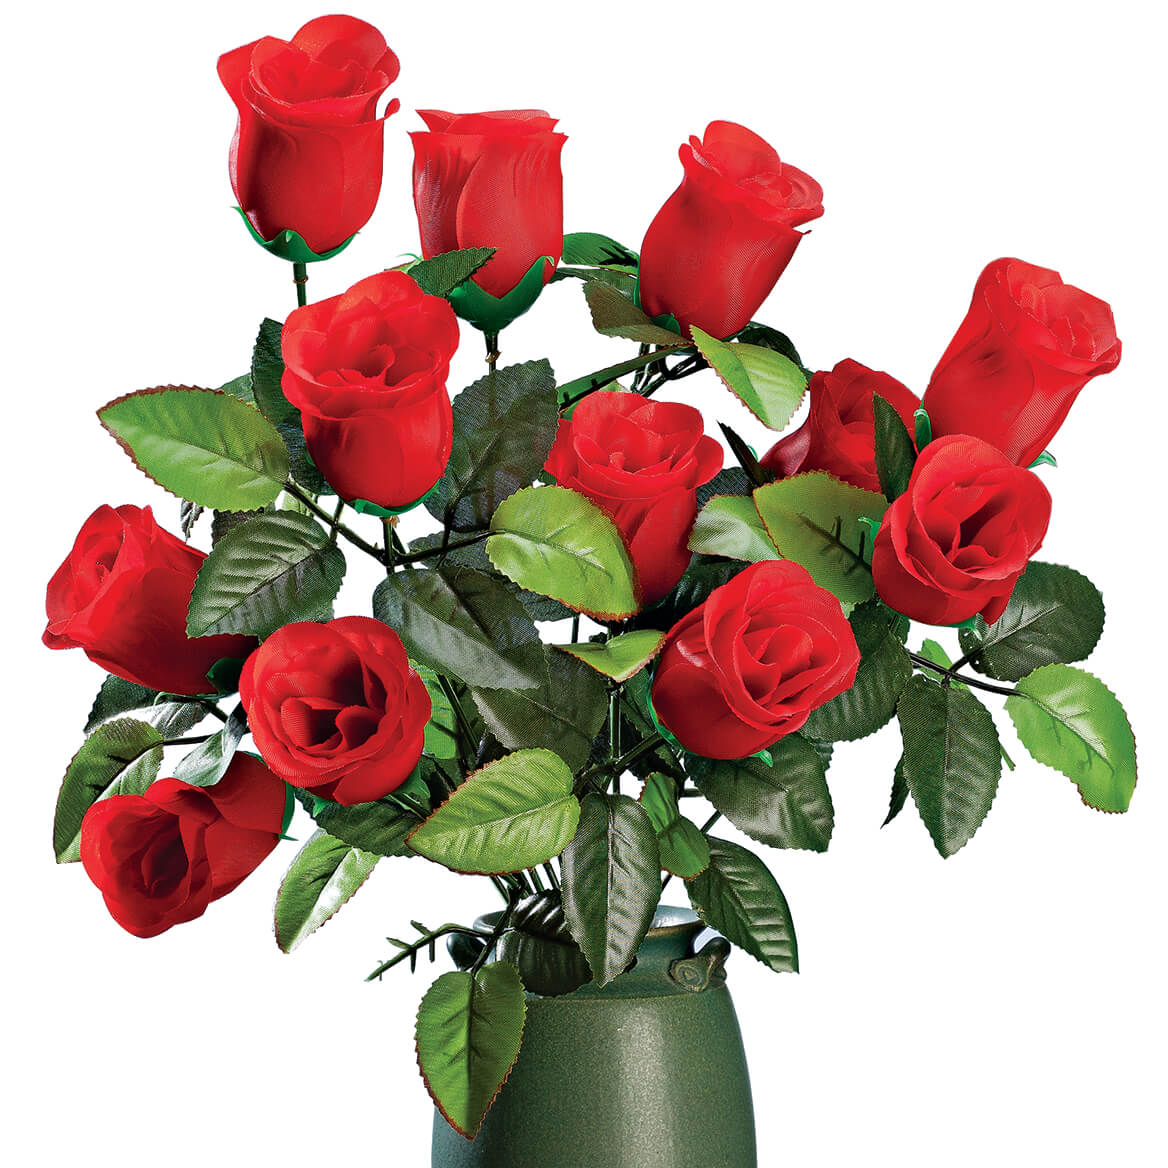 Scented Rose Bouquet Artificial Roses Fake Flowers Walter Drake